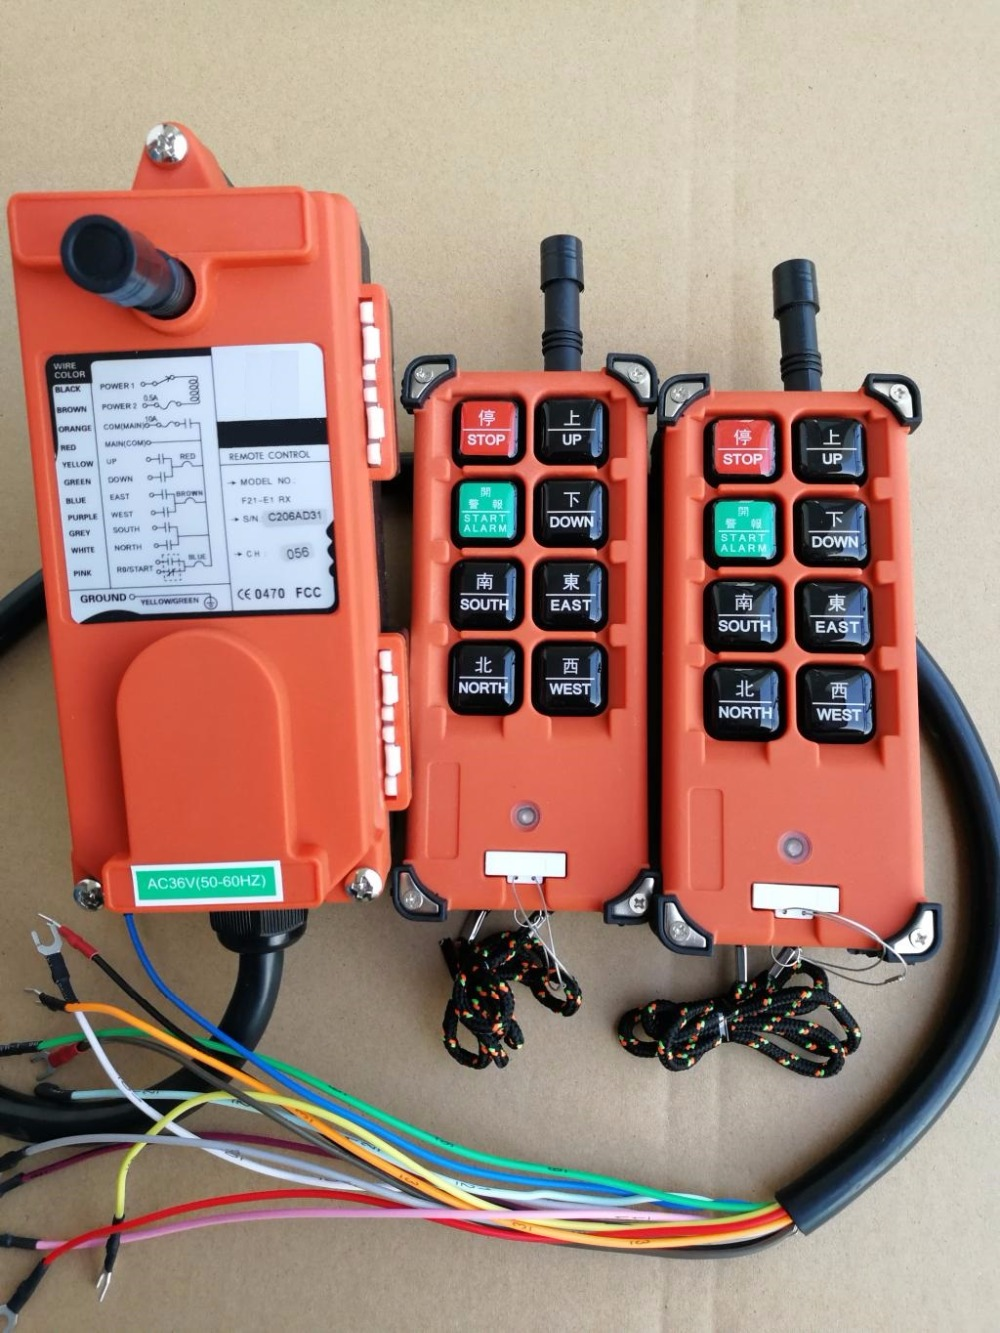 Free Shipping F21-E1B 36V 2PC transmitter 1PC receiver Motor control button Hoist crane remote control wireless radio Uting hoist crane remote control wireless radio uting remote control f21 e1b include 1 transmitter and 1 receiver 6 buttons 1 speed